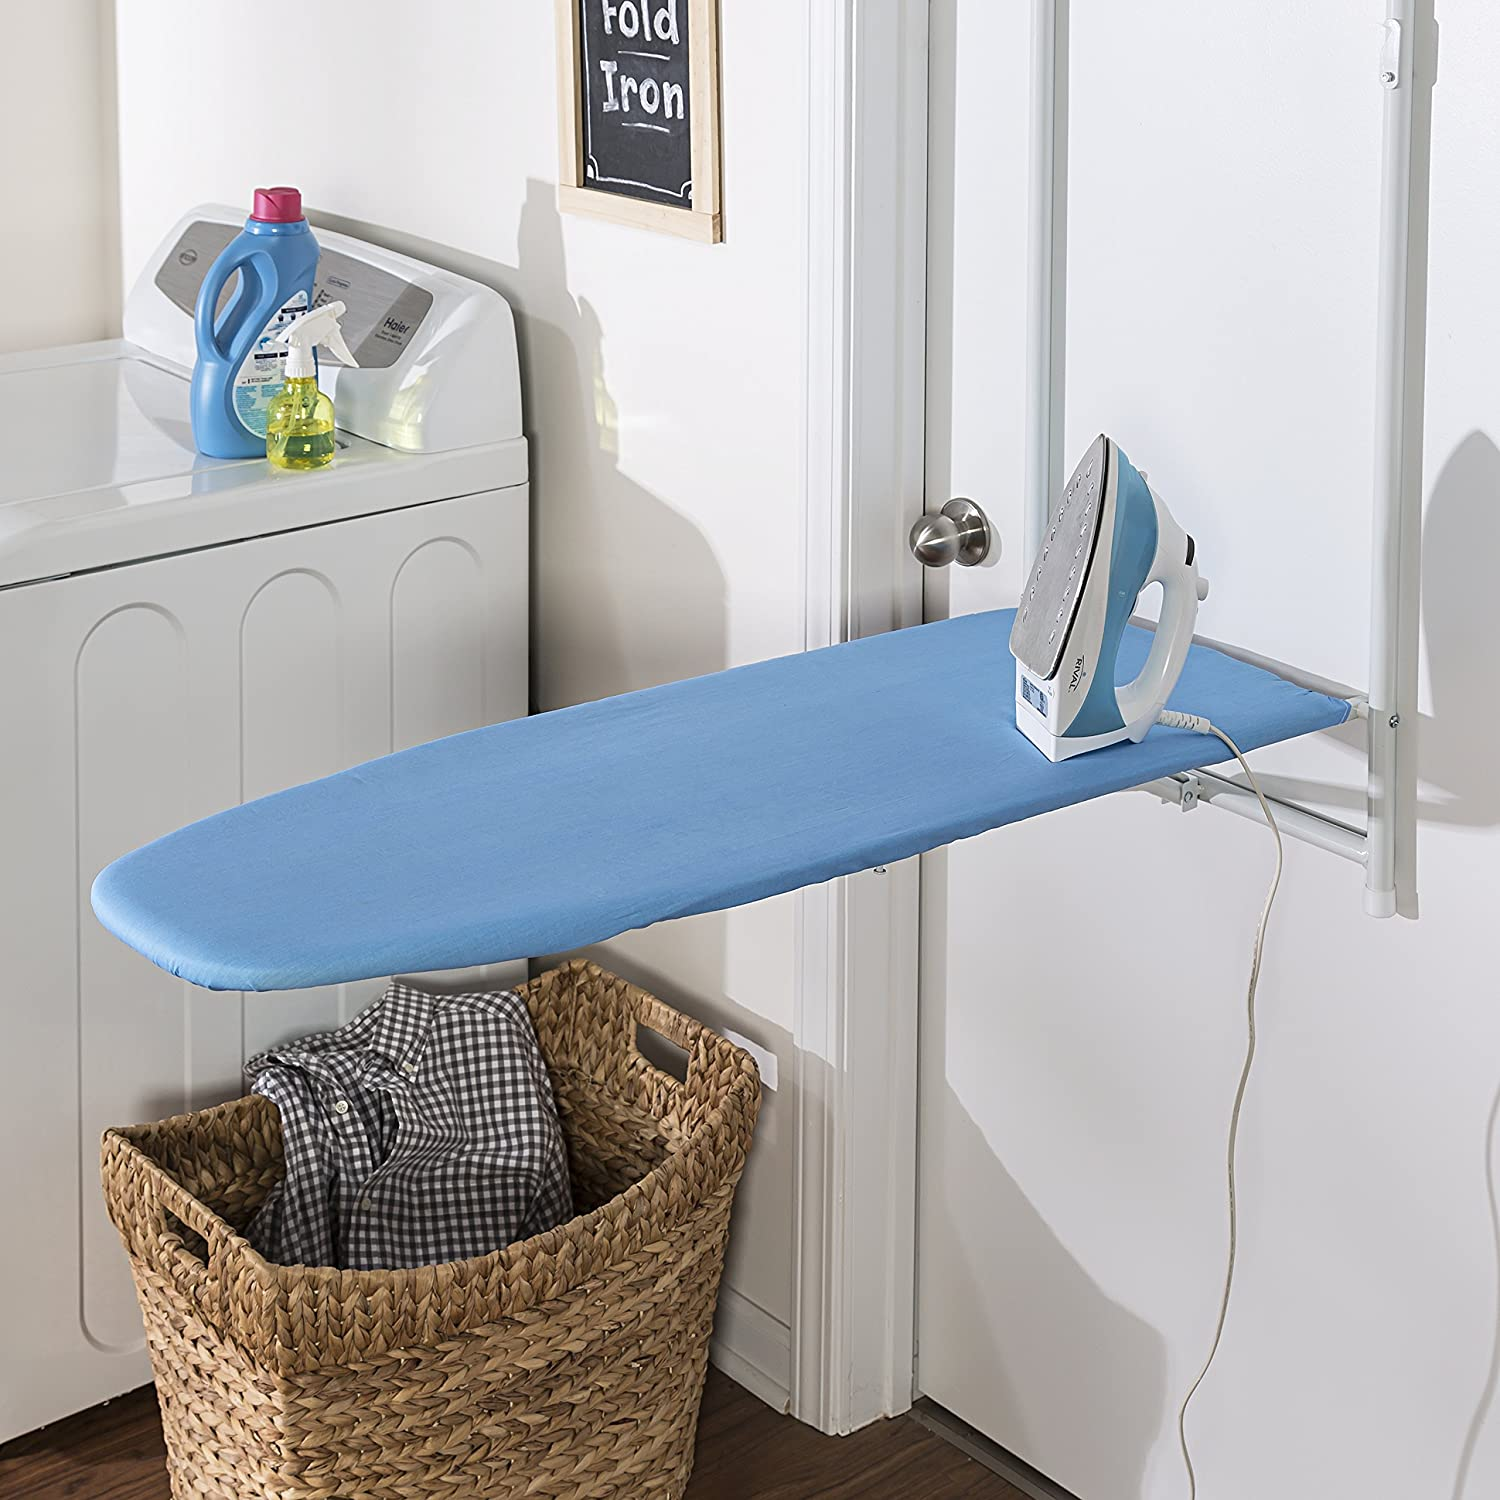 ironing board reviews consumer reports